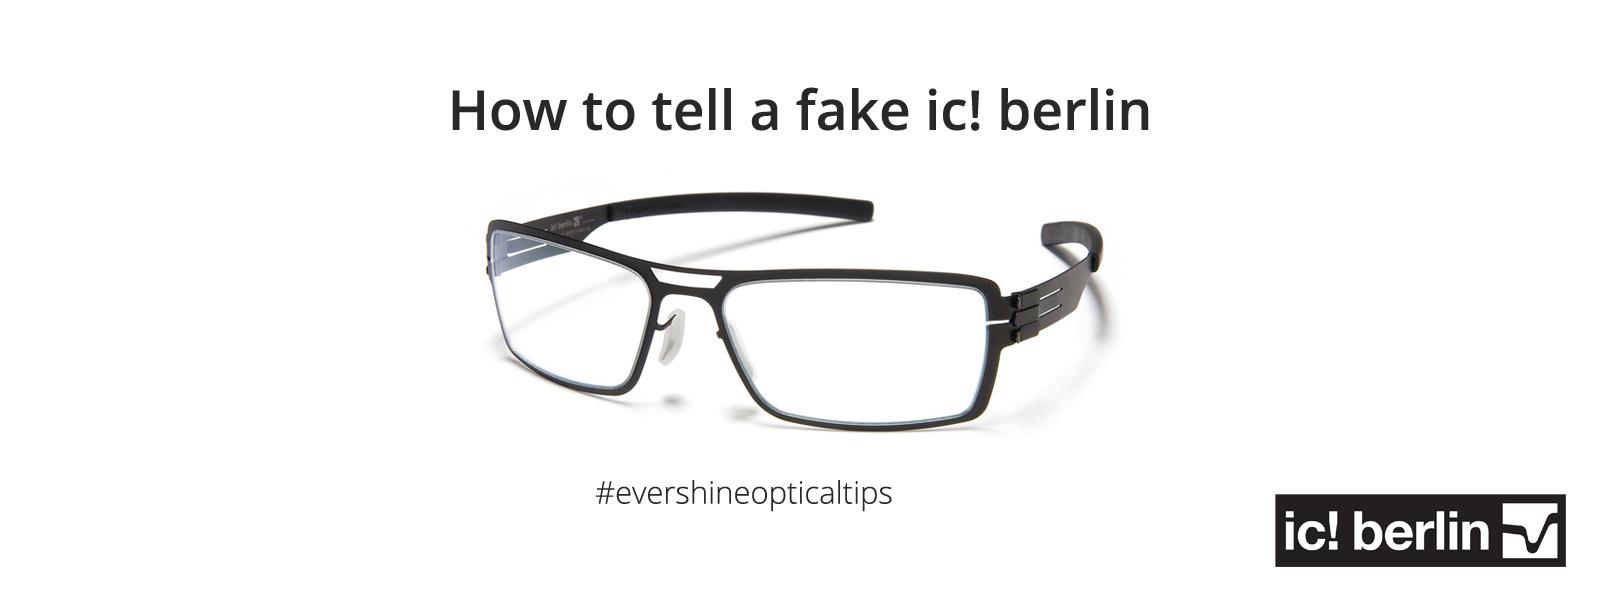 How to tell a fake ic! berlin - Evershine Optical